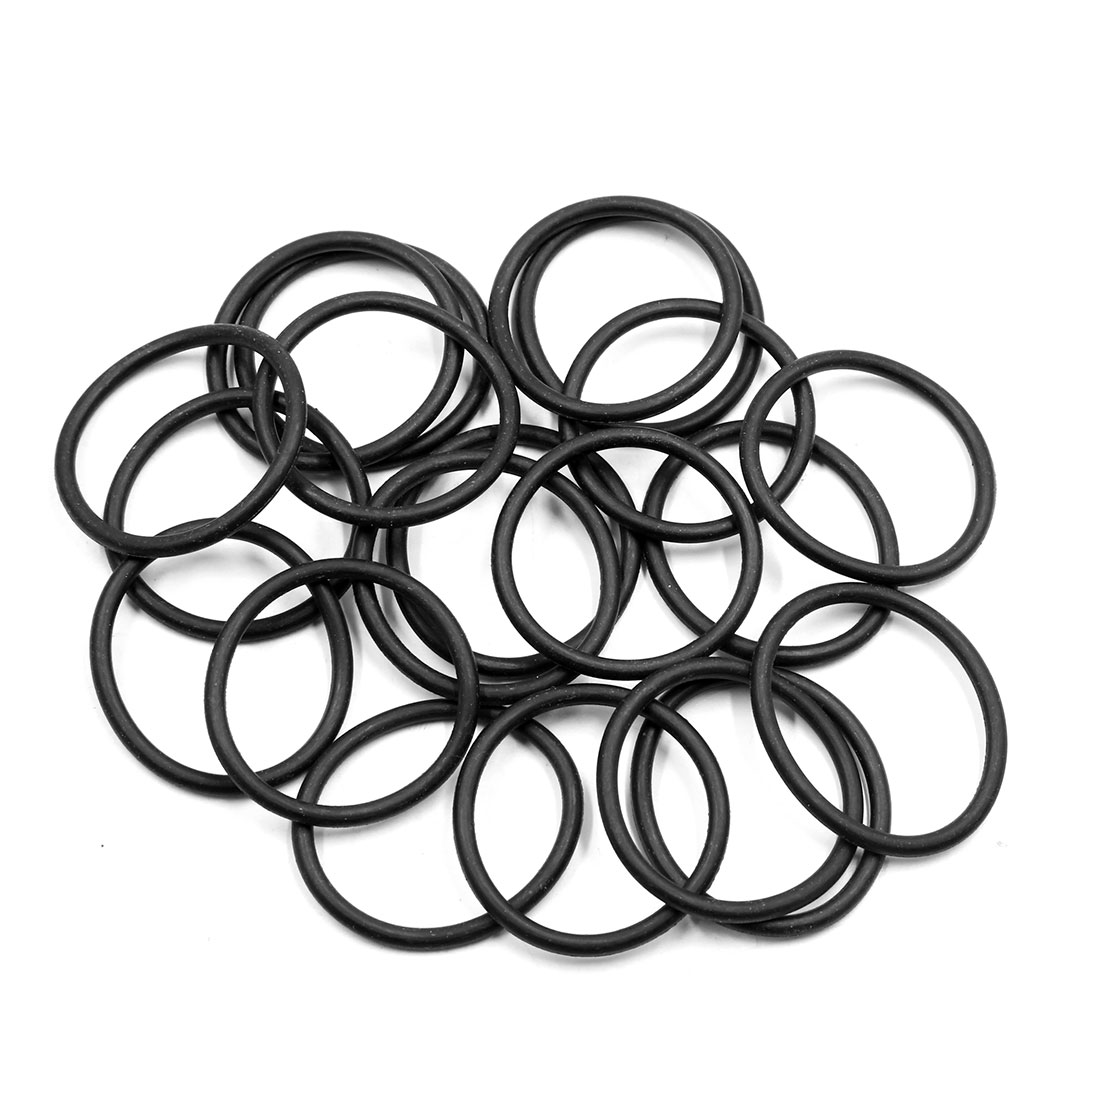 20pcs Black Universal Nitrile Rubber O-Ring Seals Gasket for Car 38.7 x 3.55mm